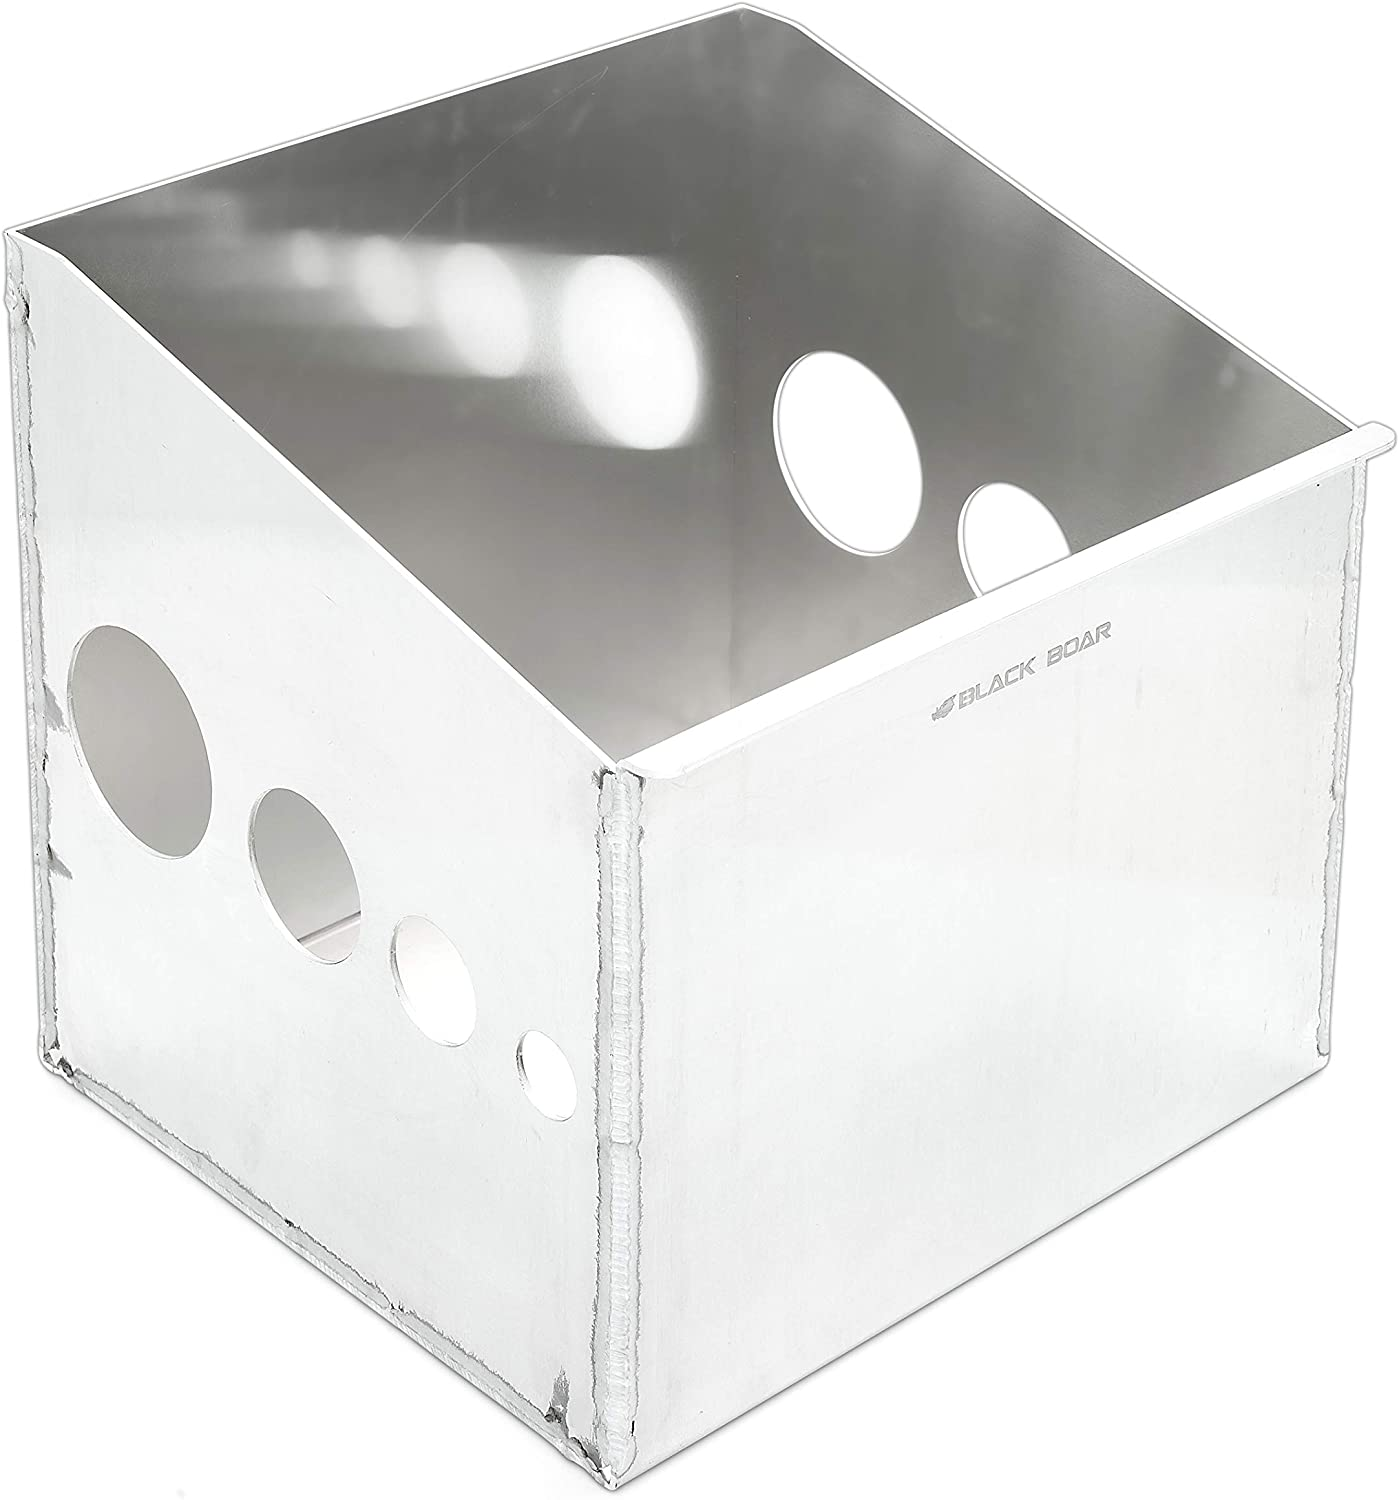 Black Boar Aluminum Single Storage Container for Enclosed Trailer | Securely Holds (1) Fuel jug While in Transit | Durable Construction | Easy to Install (66113)